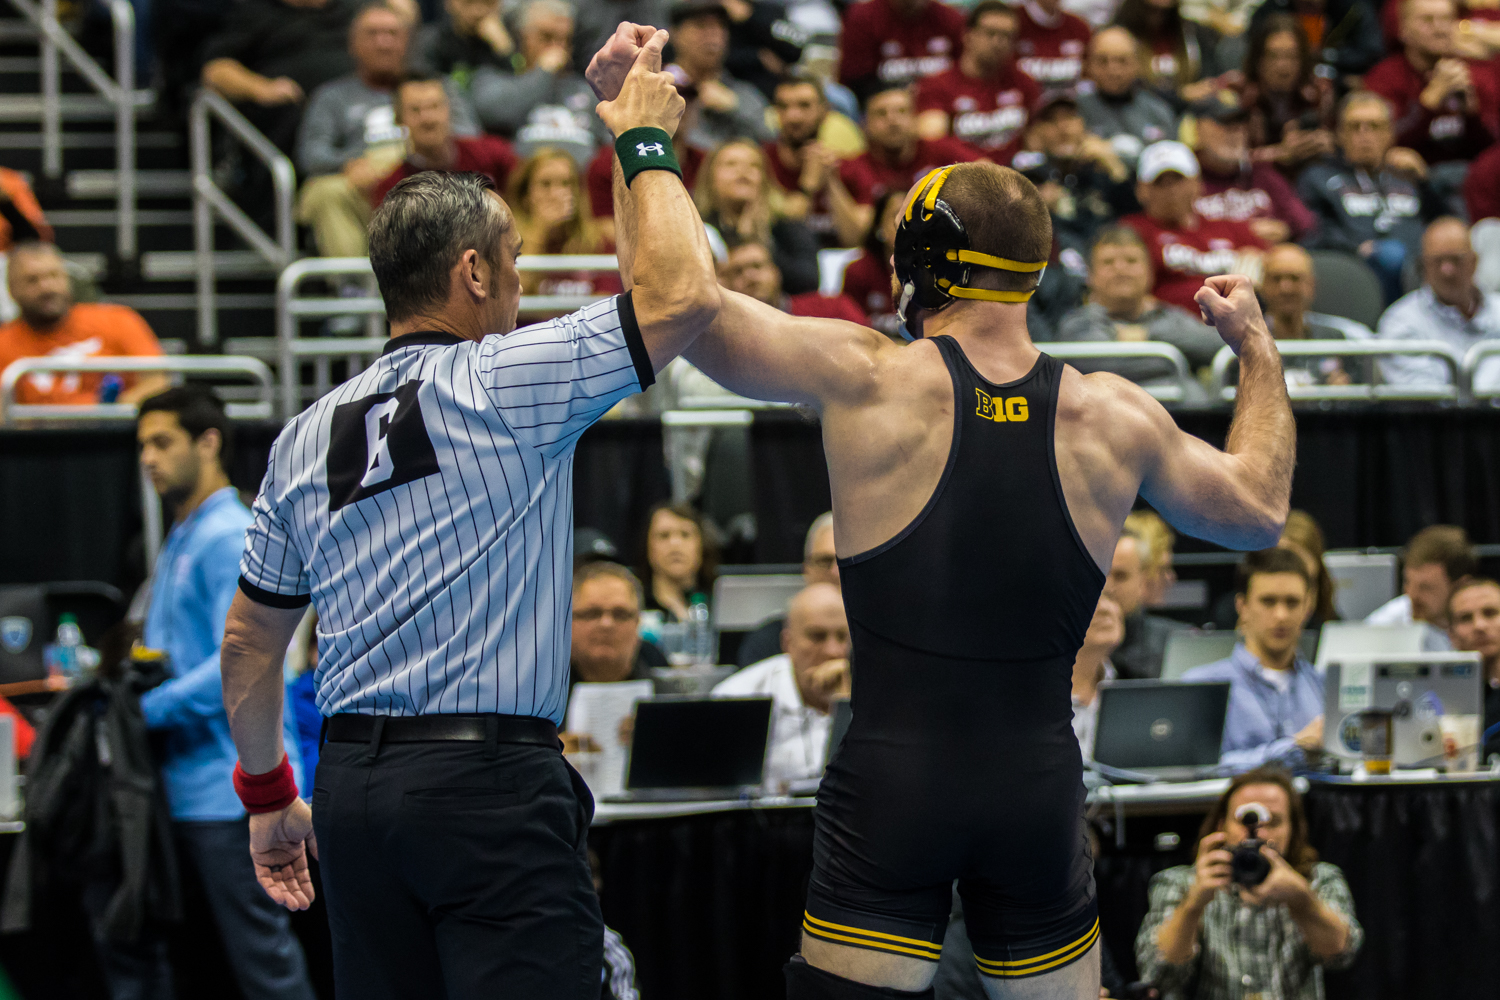 Iowa%E2%80%99s+165-pound+Alex+Marinelli+defeats+Michigan%E2%80%99s+Logan+Massa+during+the+fourth+session+of+the+2019+NCAA+D1+Wrestling+Championships+at+PPG+Paints+Arena+in+Pittsburgh%2C+PA+on+Friday%2C+March+22%2C+2019.+Marinelli+won+by+decision%2C+5-3.